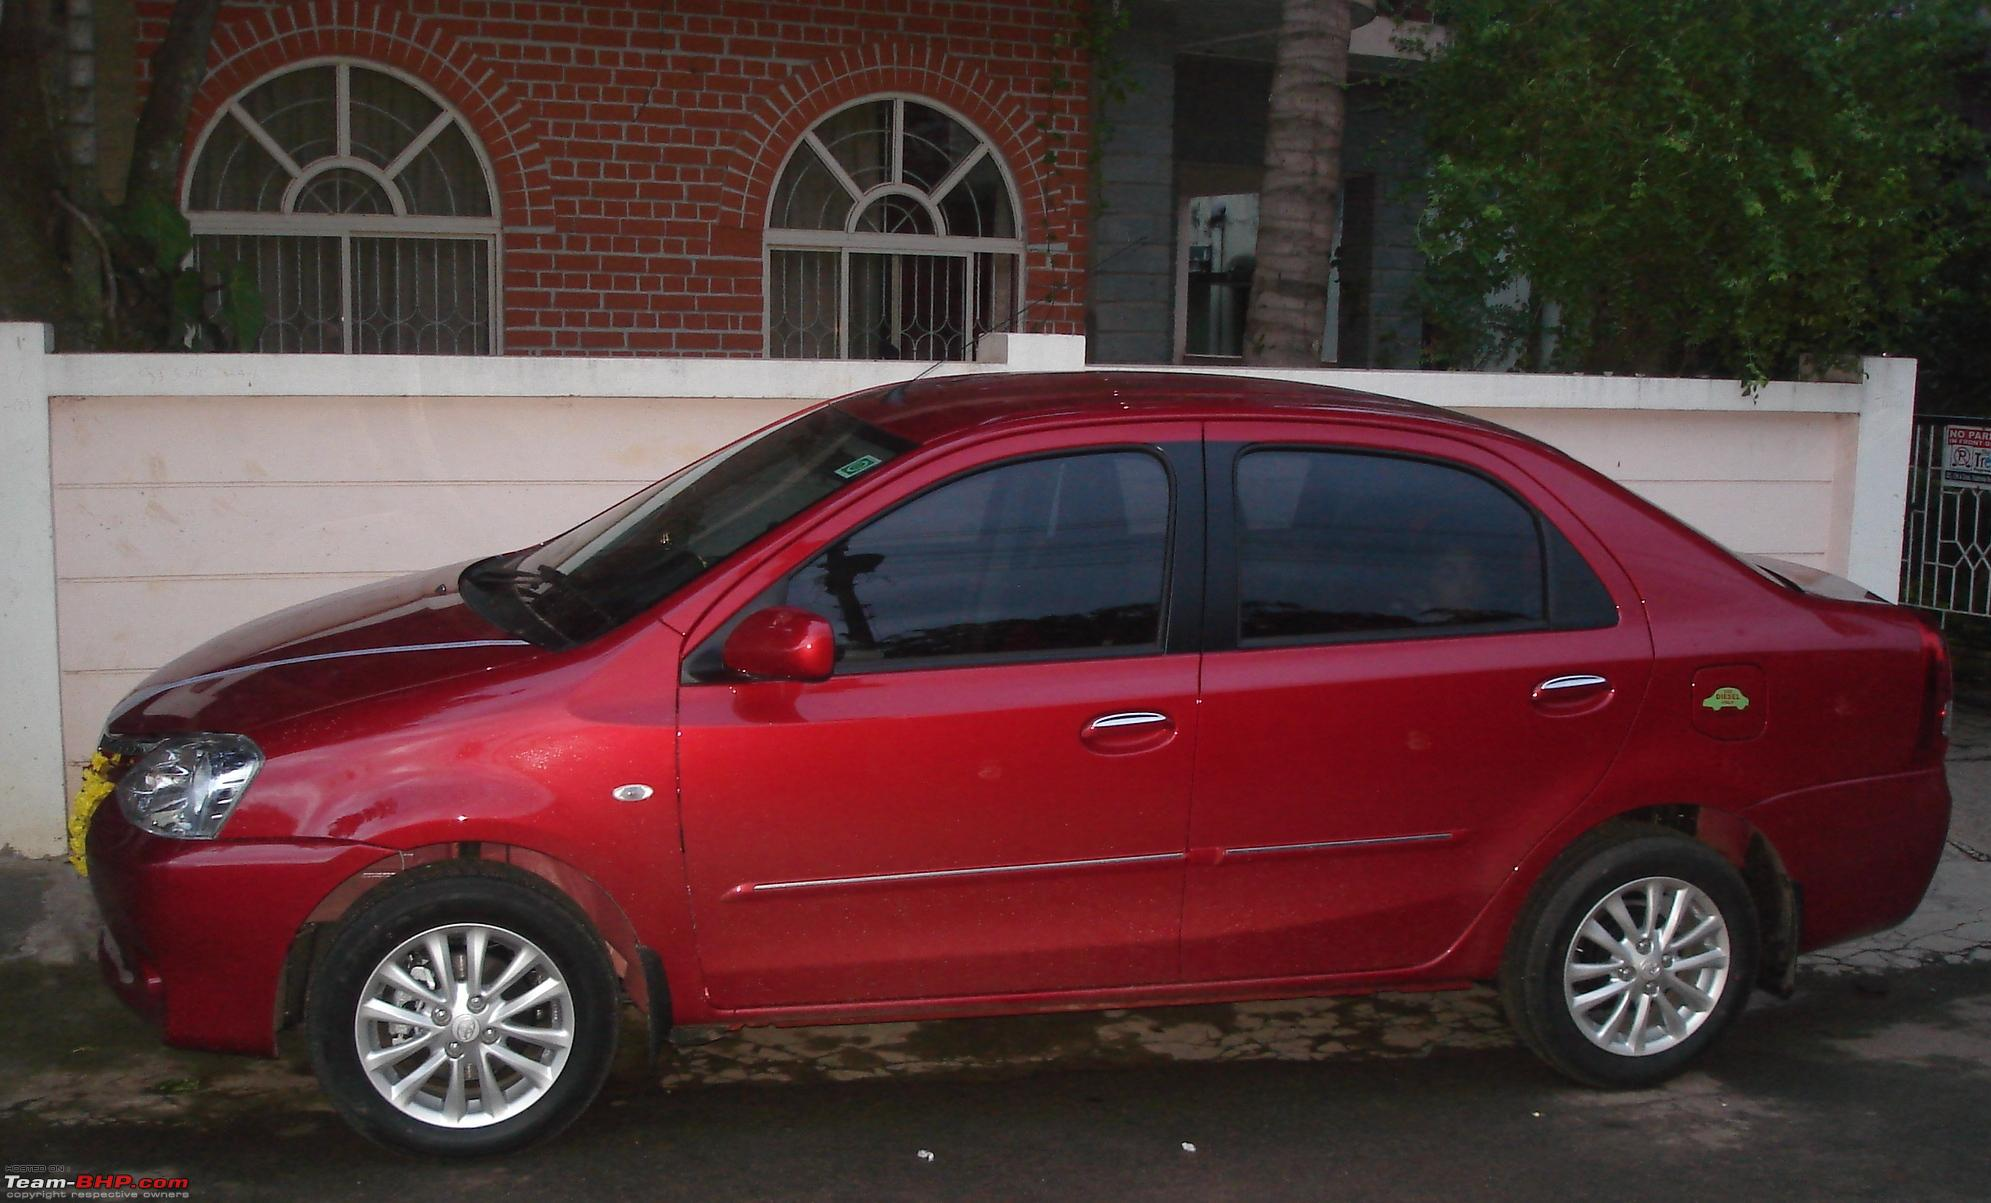 What colour car not to buy - Toyota Etios Diesel The Car That I Almost Did Not Buy Etiois2 Jpg